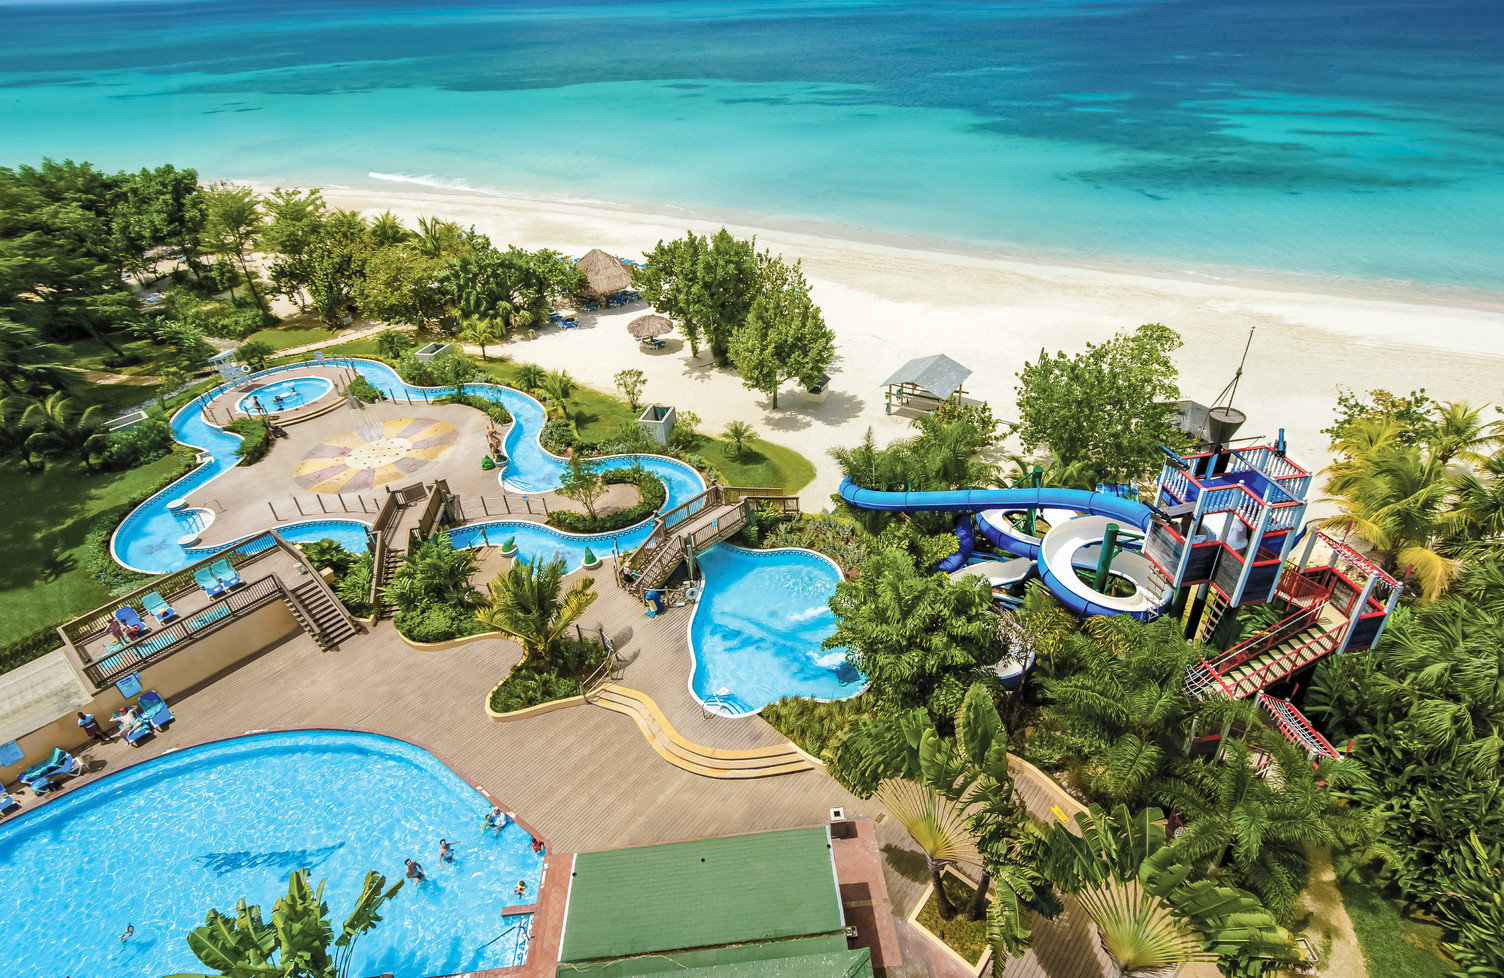 All-Inclusive Resorts Family Travel Hotels leisure Resort tourism amusement park aerial photography bird's eye view vacation resort town swimming pool recreation water tropics coastal and oceanic landforms tree Water park caribbean bay